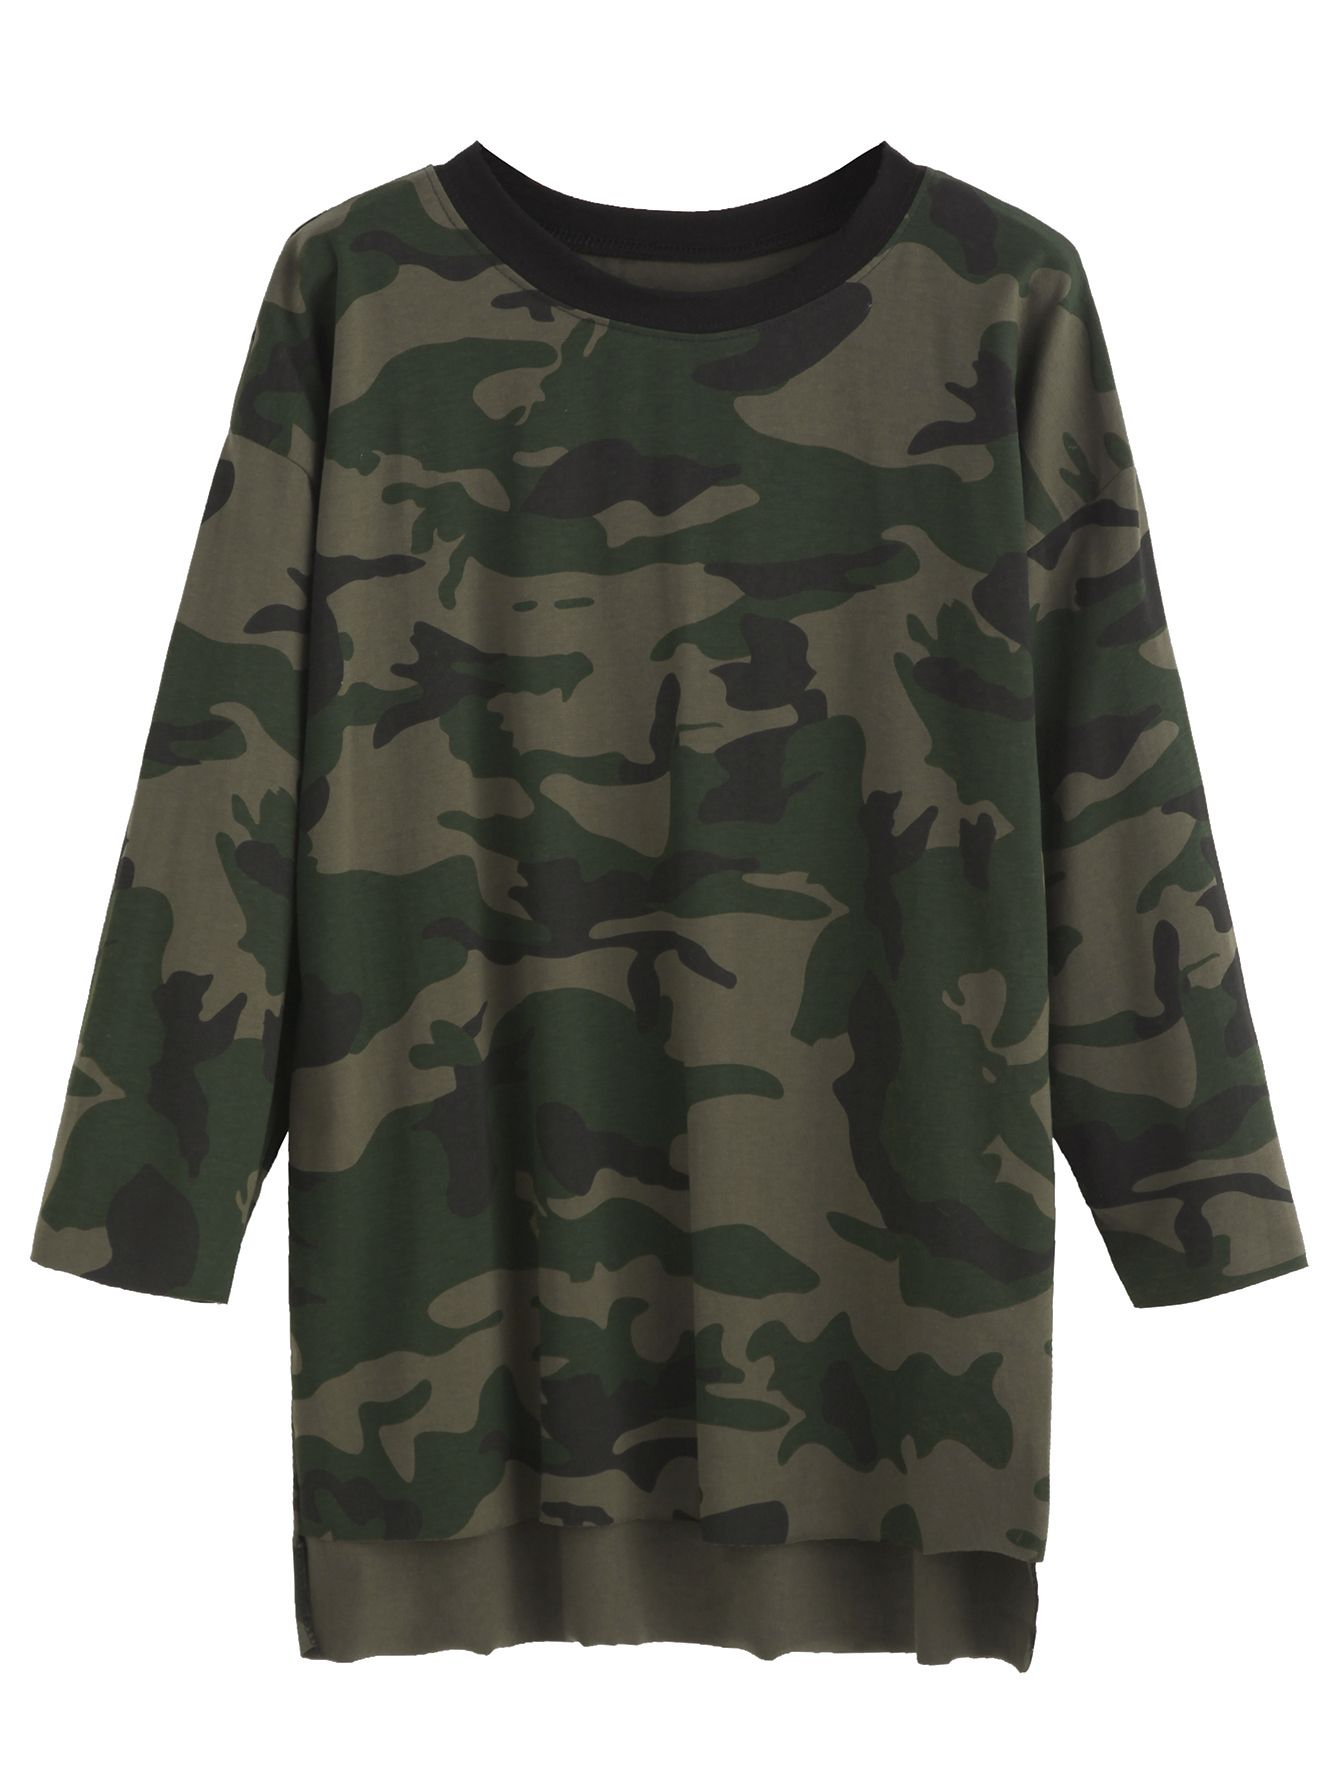 Camo Print High Low T-shirt — 0.00 € ----------------------------color: Green size: one-size